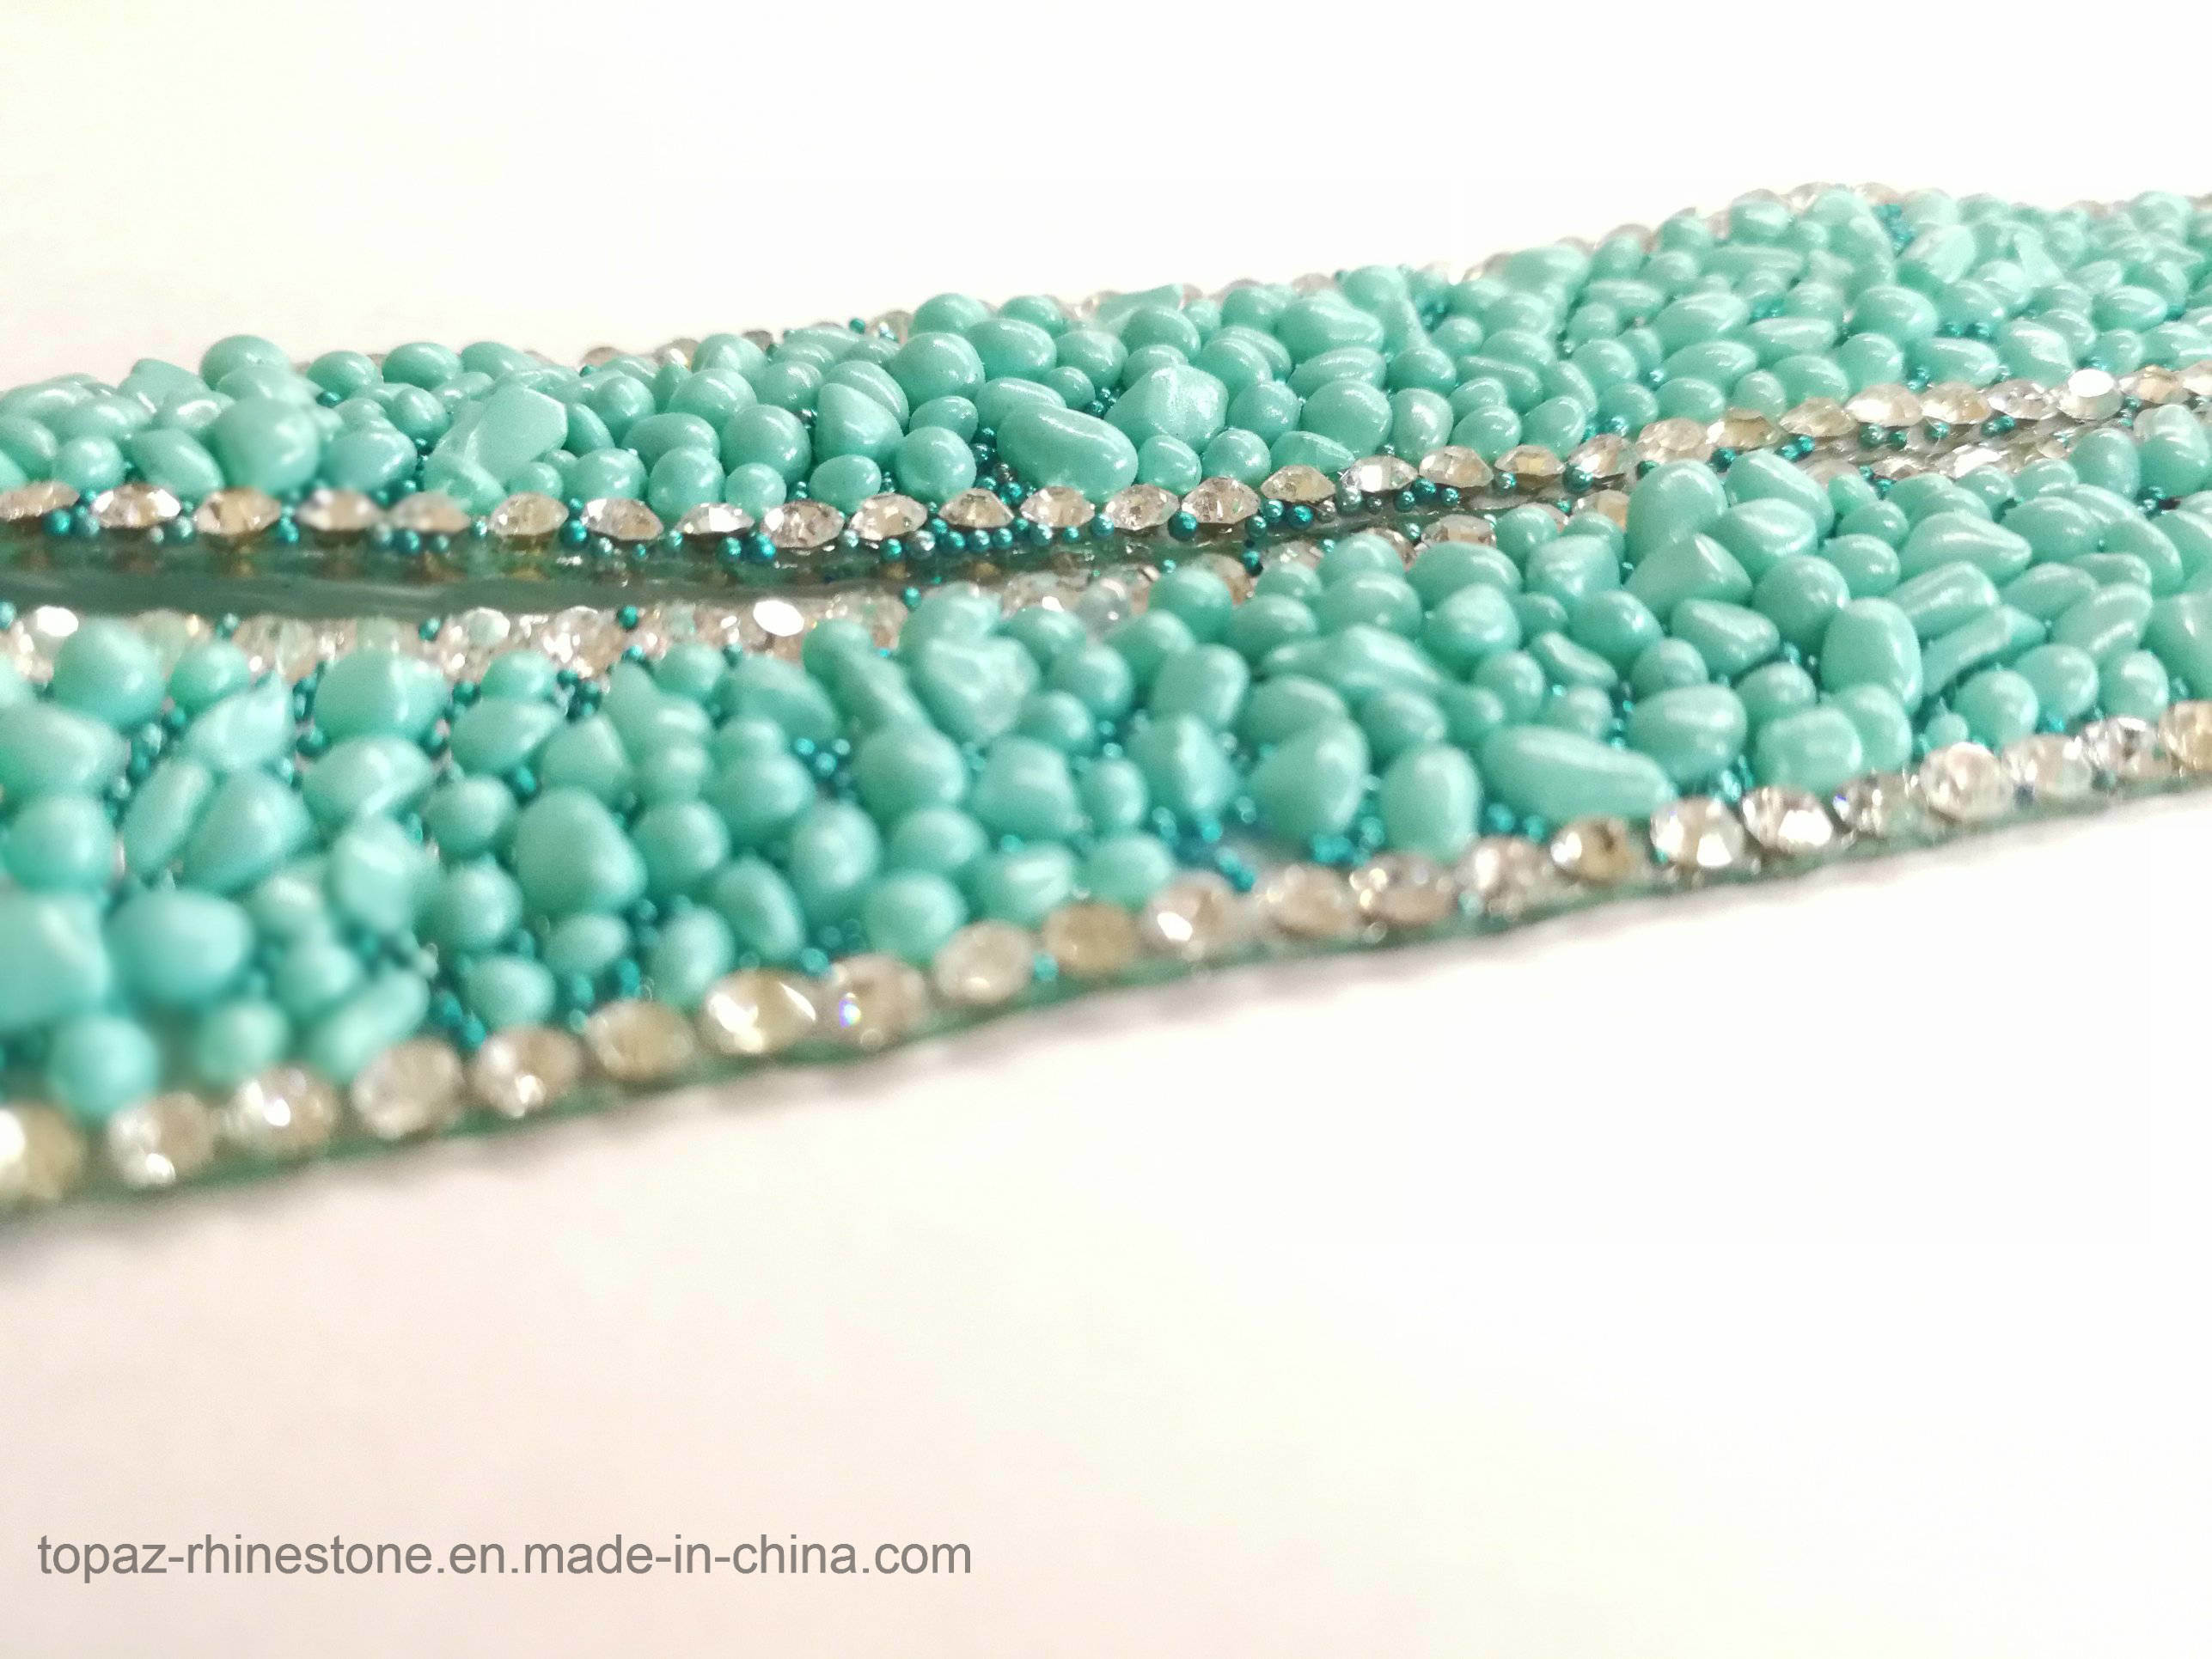 New Material 15mm Aquamarine Rhinestone Resin Chain Hotfix Rhinestone Chain (TC-15mm aquamarine)